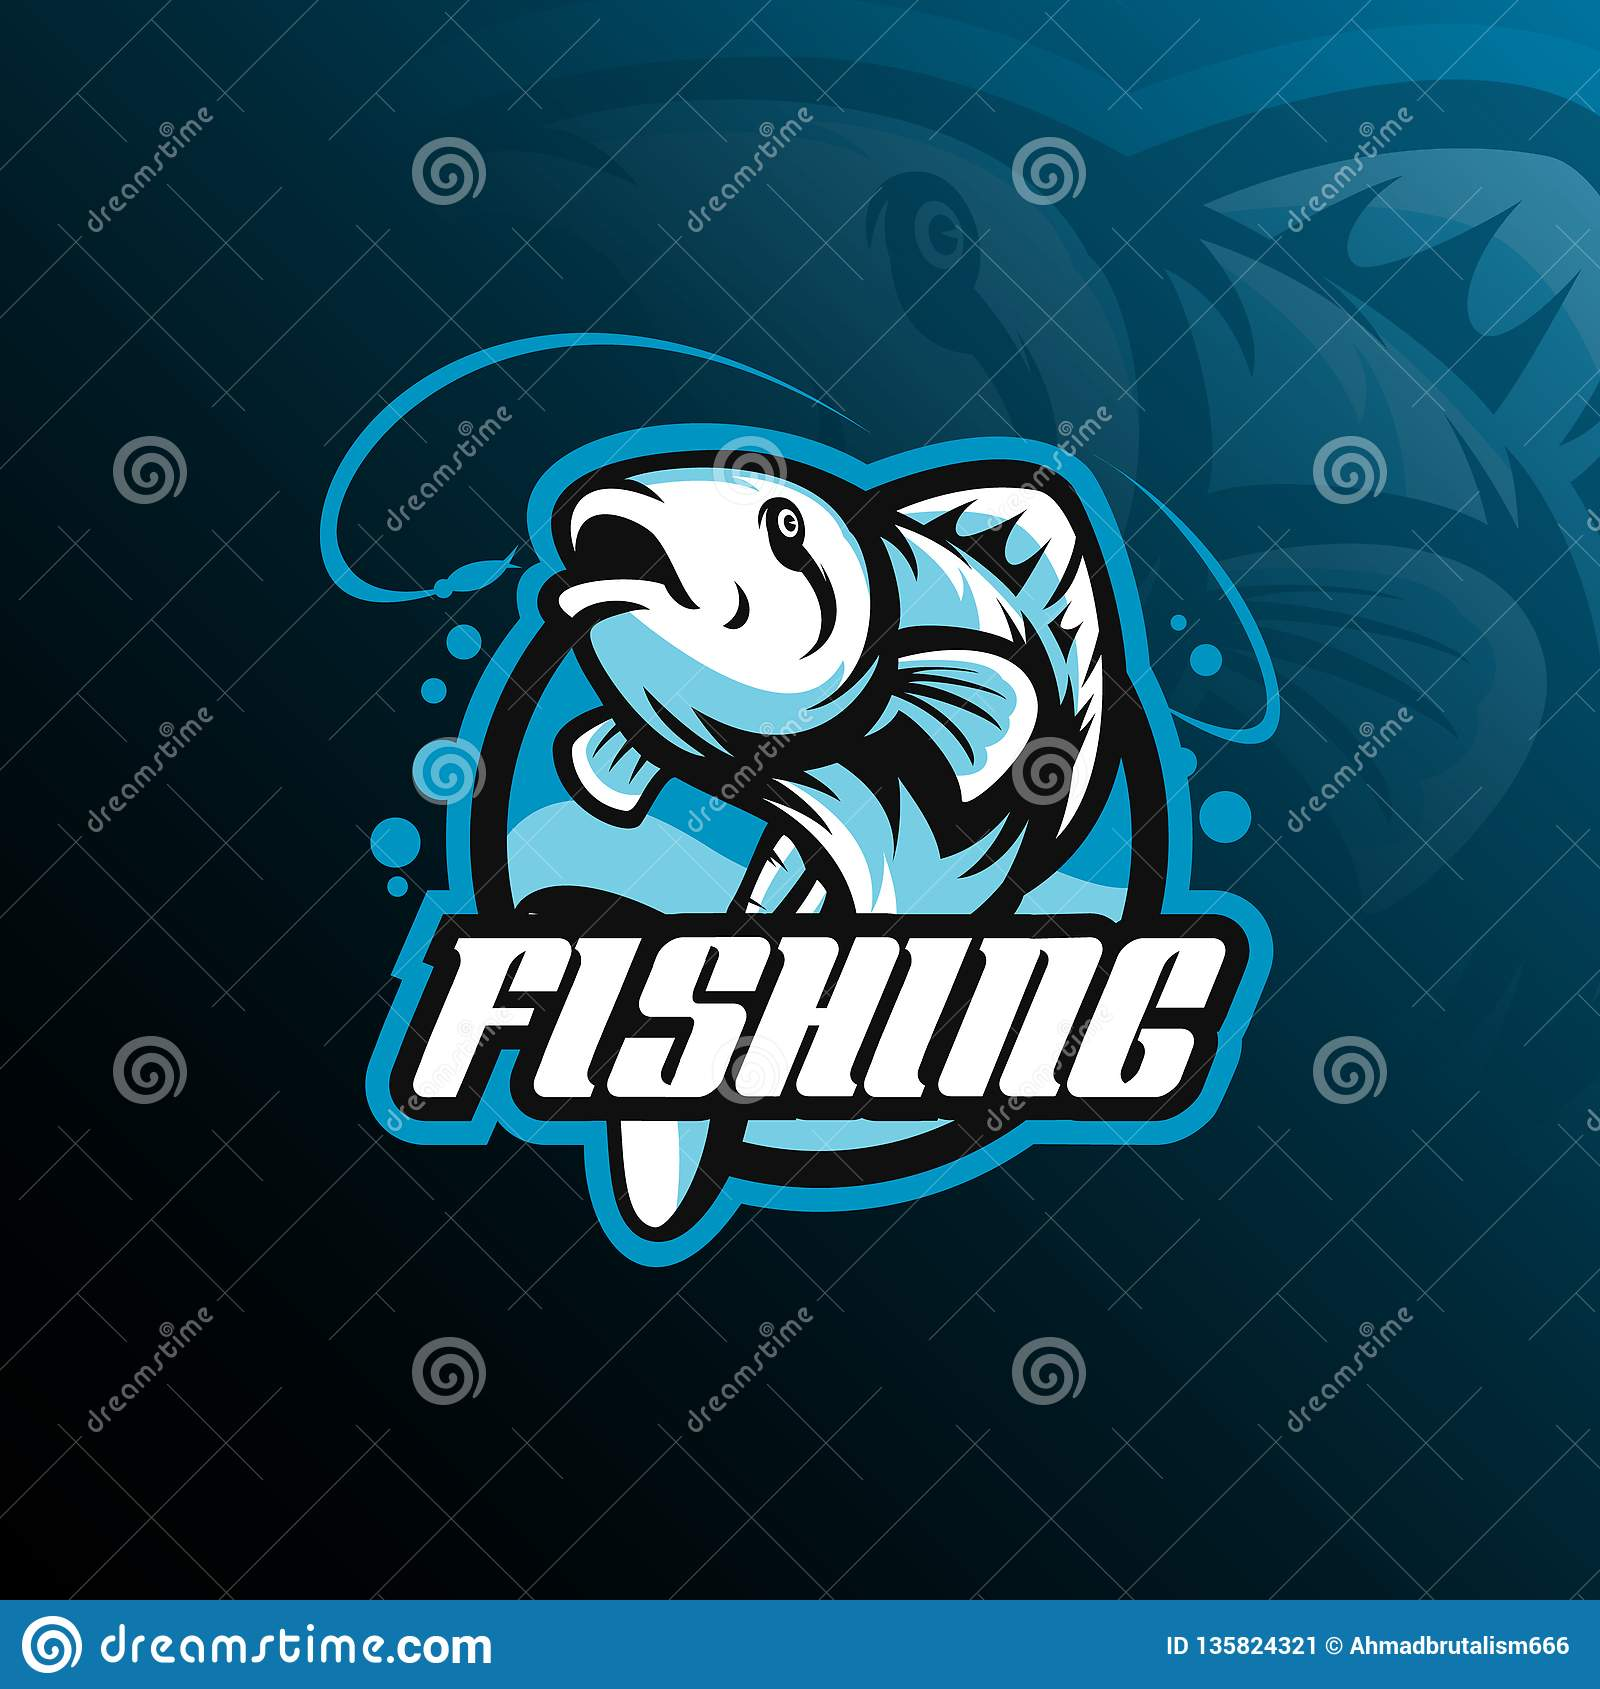 Fish mascot logo design vector with modern illustration concept style for badge, emblem and tshirt printing. fish jumping